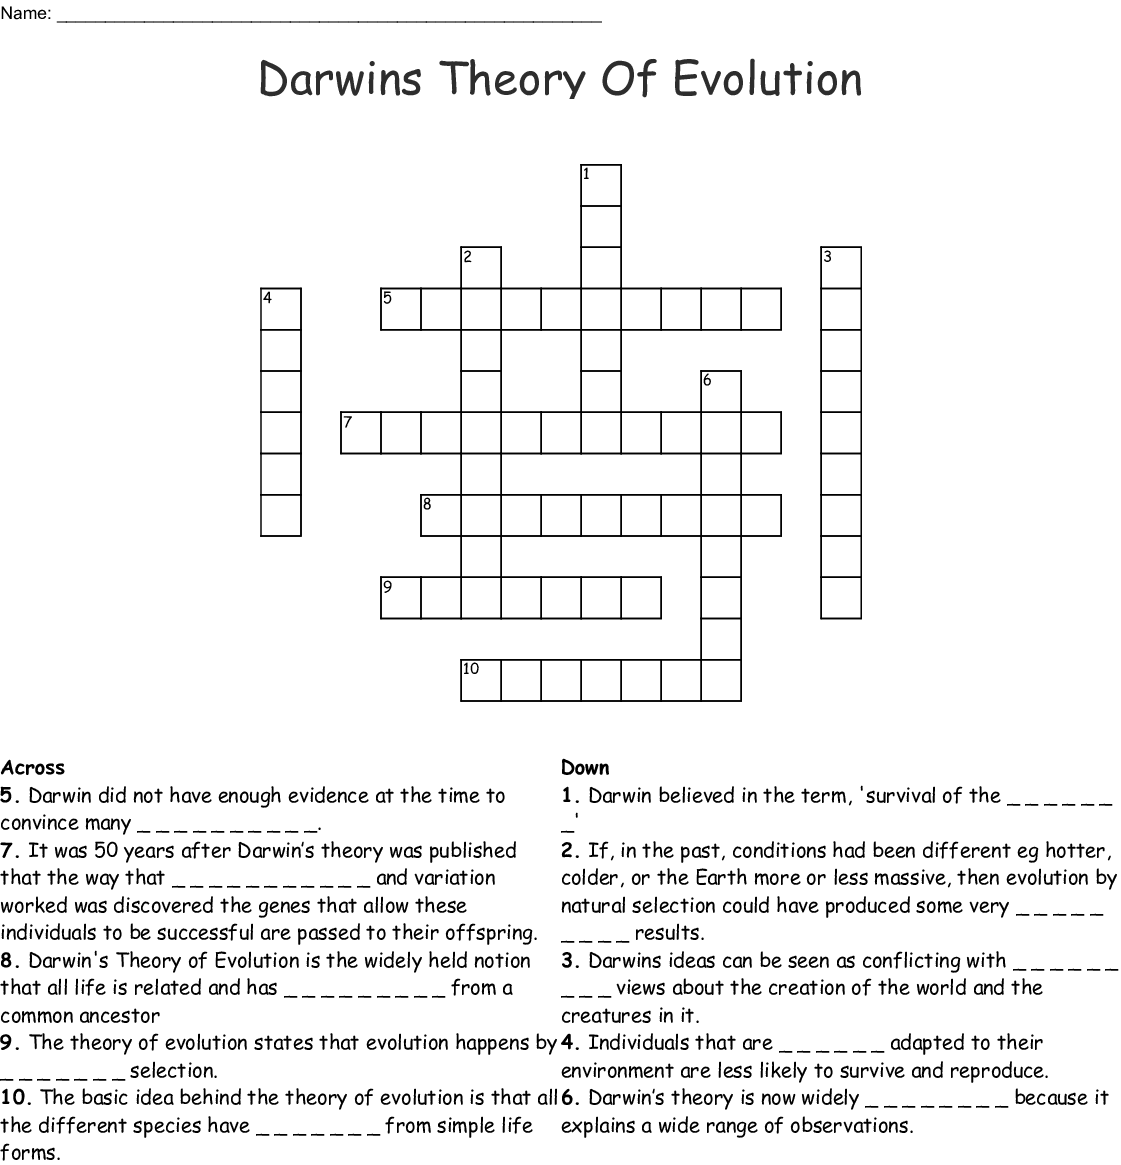 Darwins Theory Of Evolution Crossword